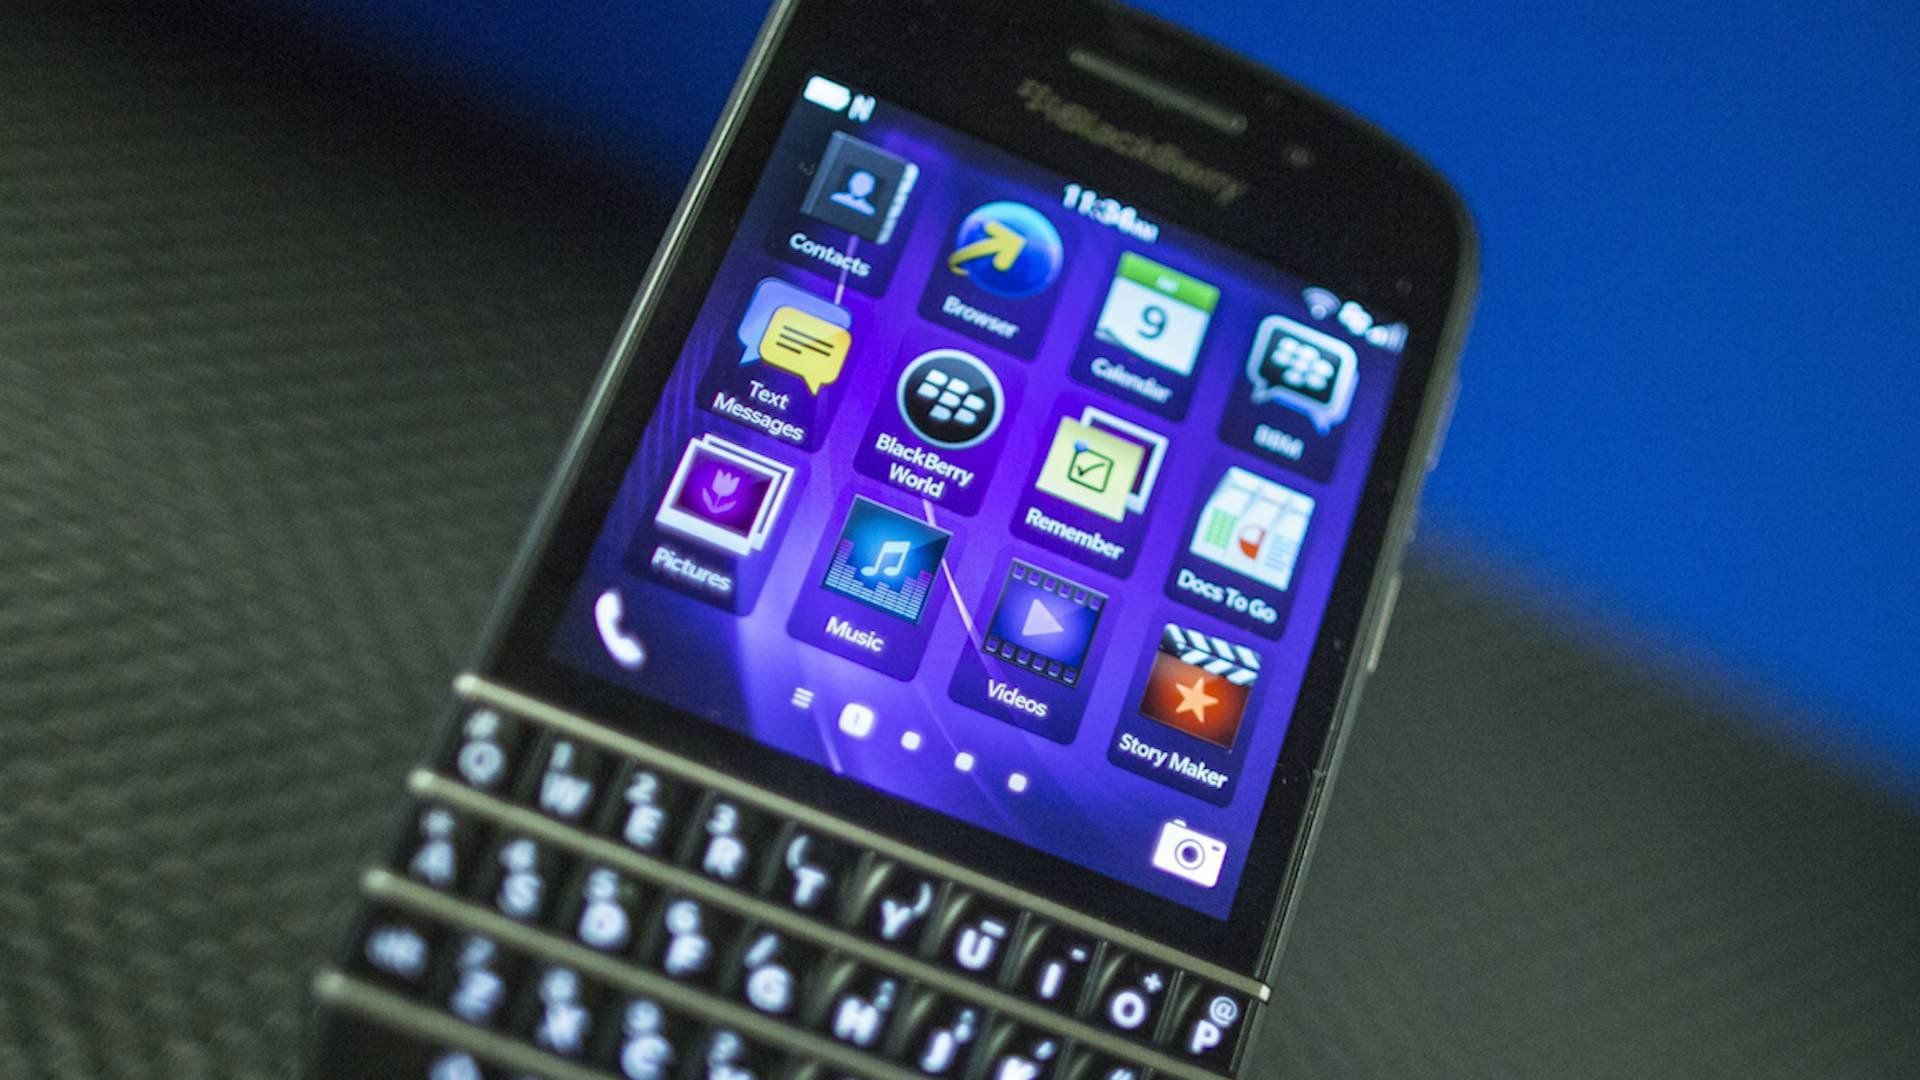 I spoke with BlackBerry shareholders about the company's